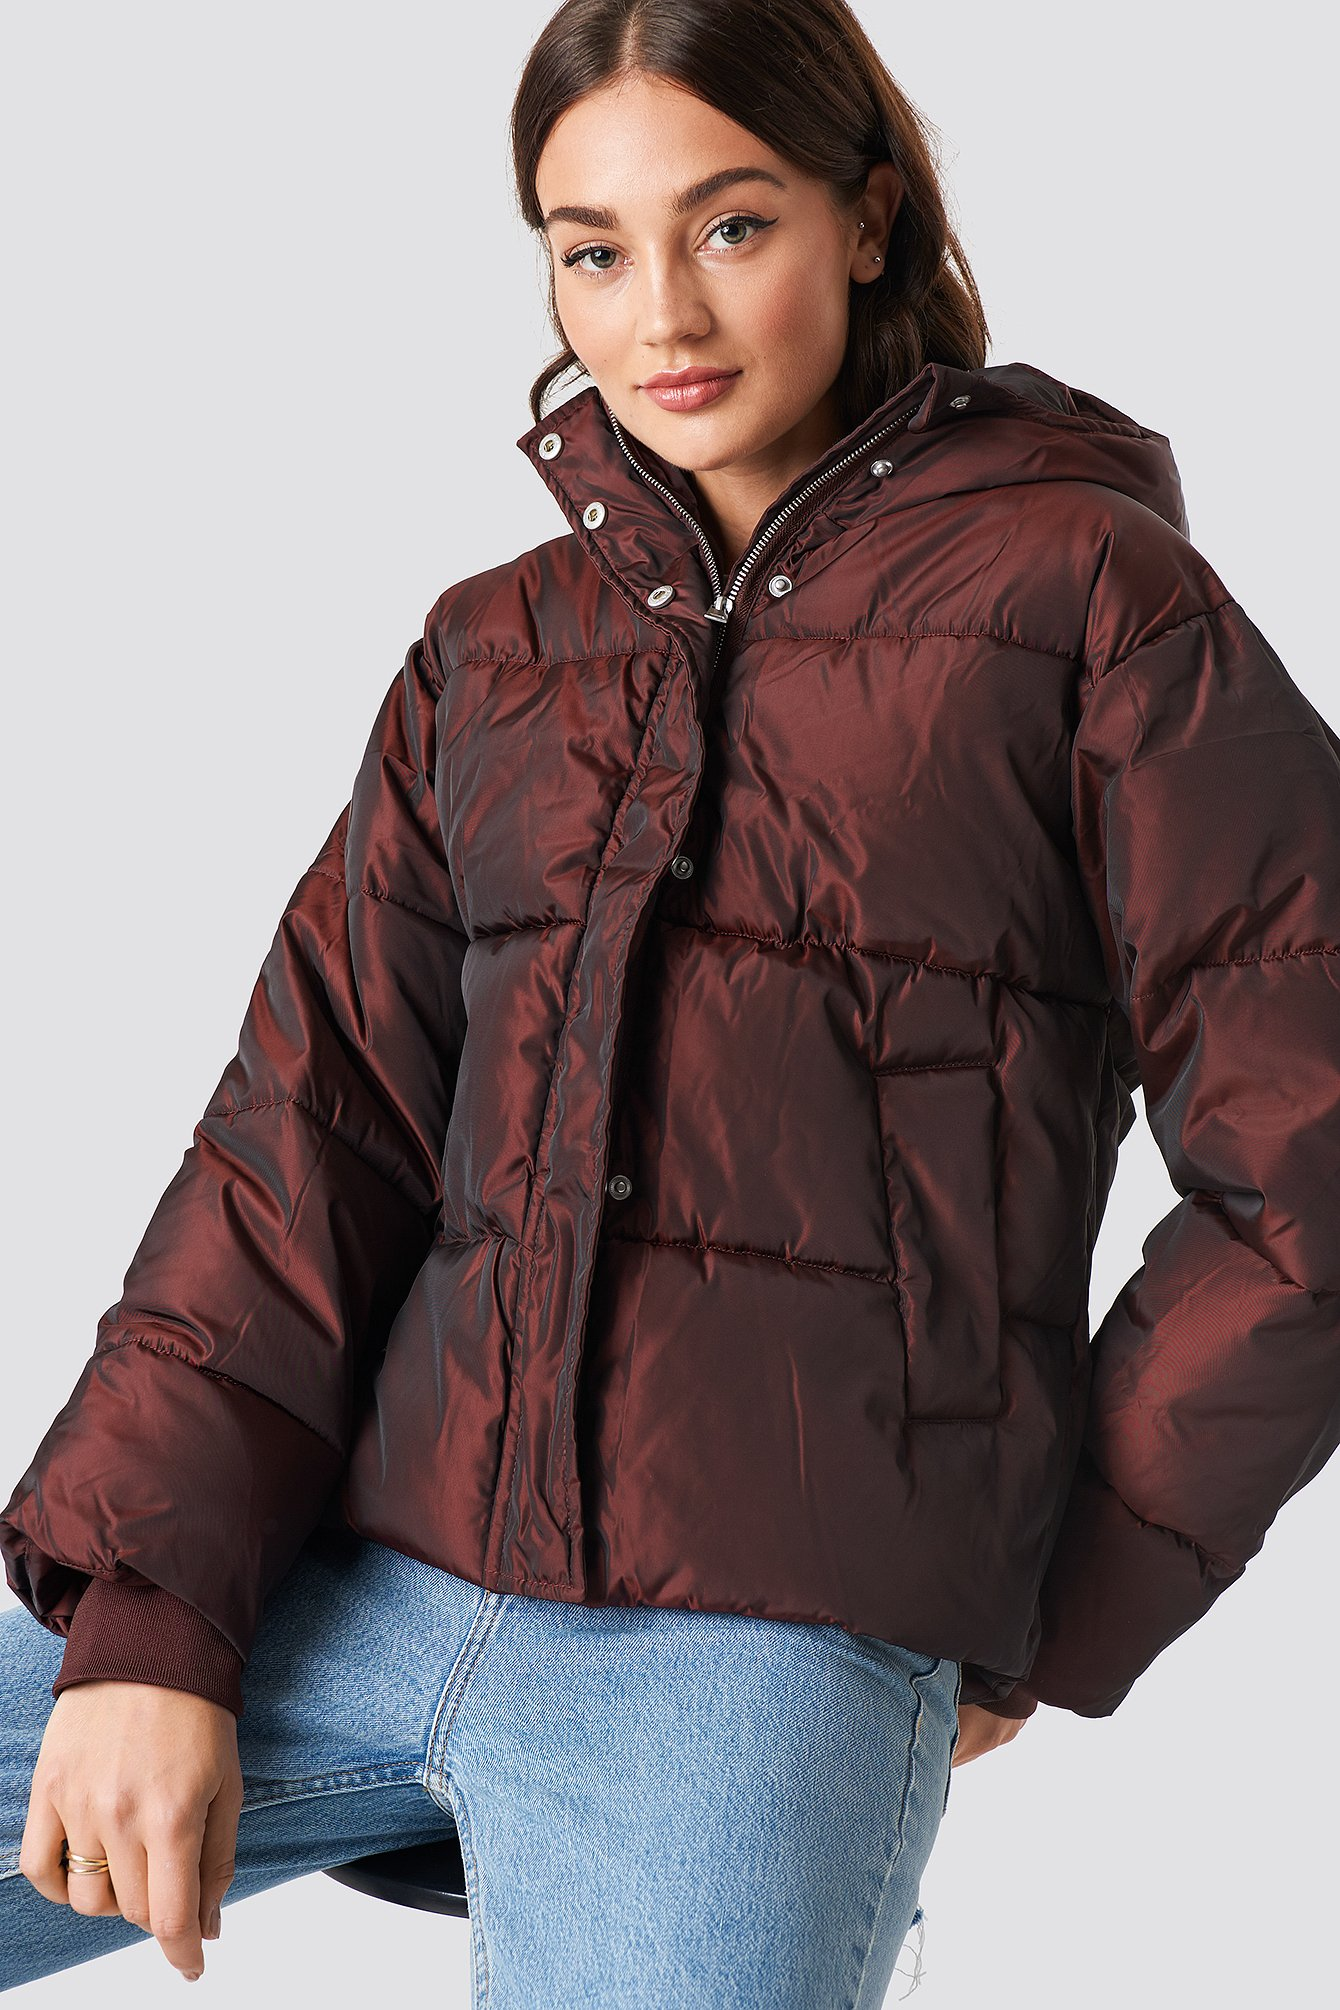 na-kd -  Shiny Padded Jacket - Brown,Red